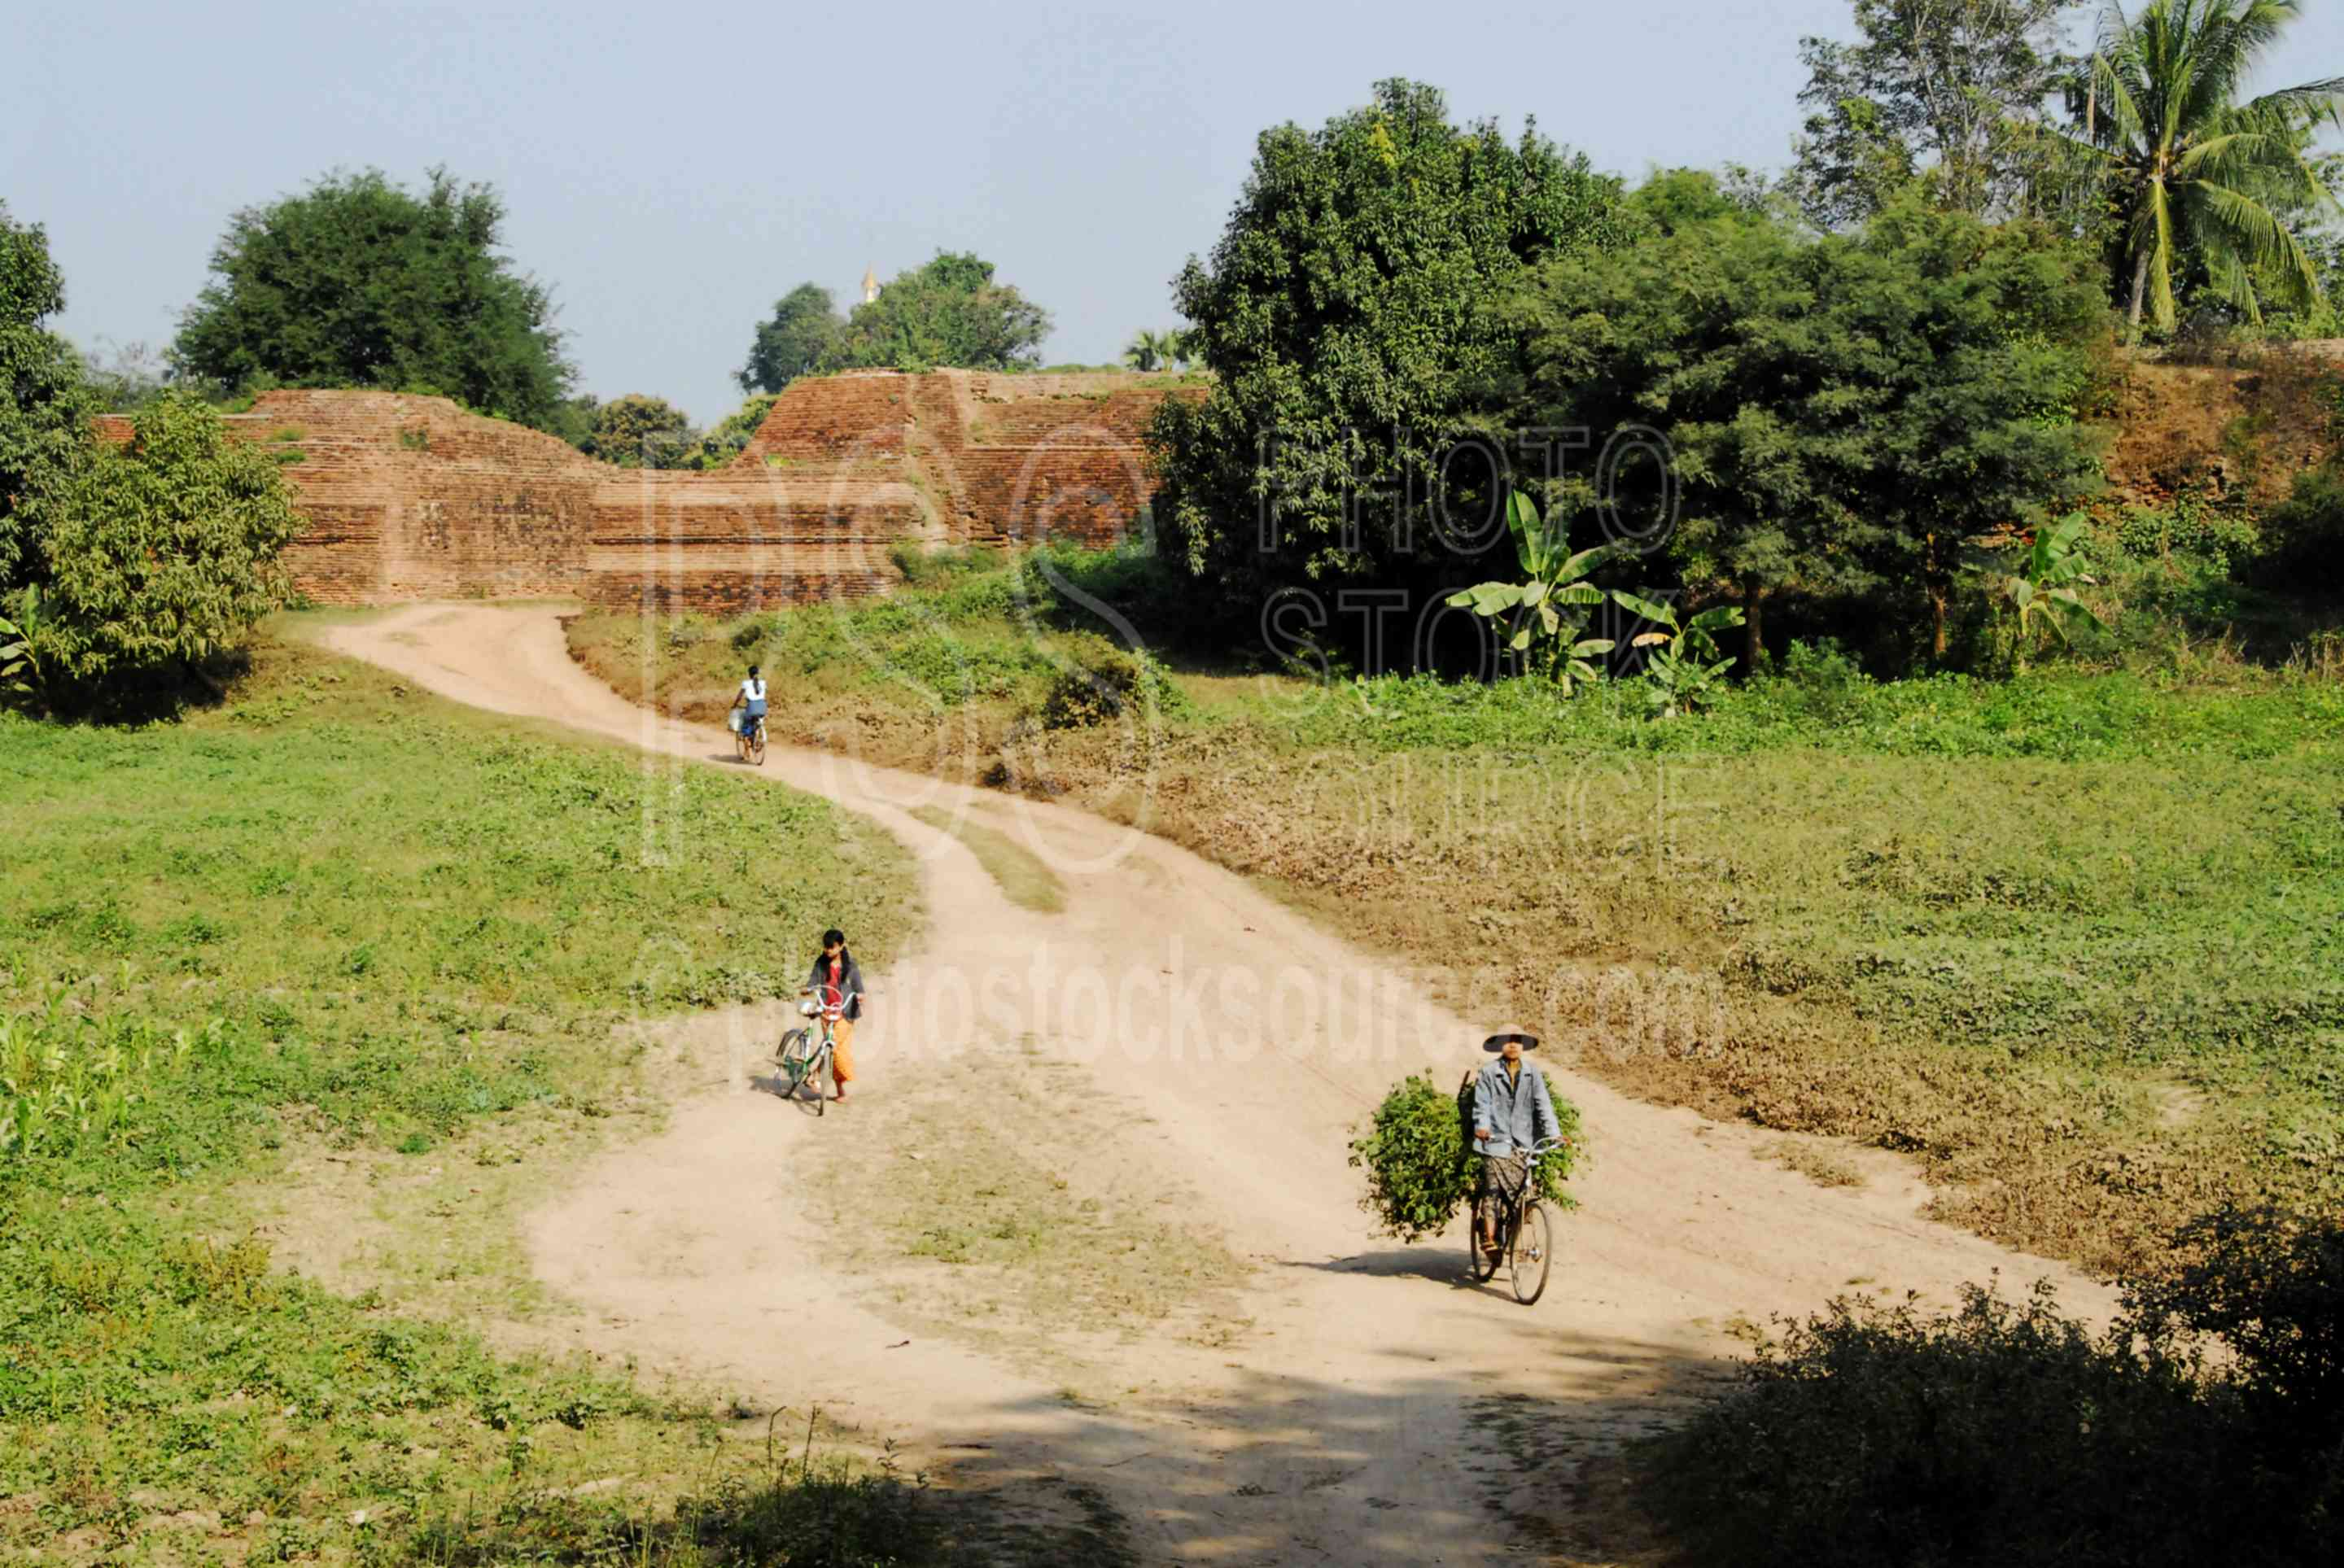 Women on Bicylcles,myanmar,woman,bike,bicycle,riding,carrying,transport,walls,fortification,gate,inwa,hathawaddy,ava